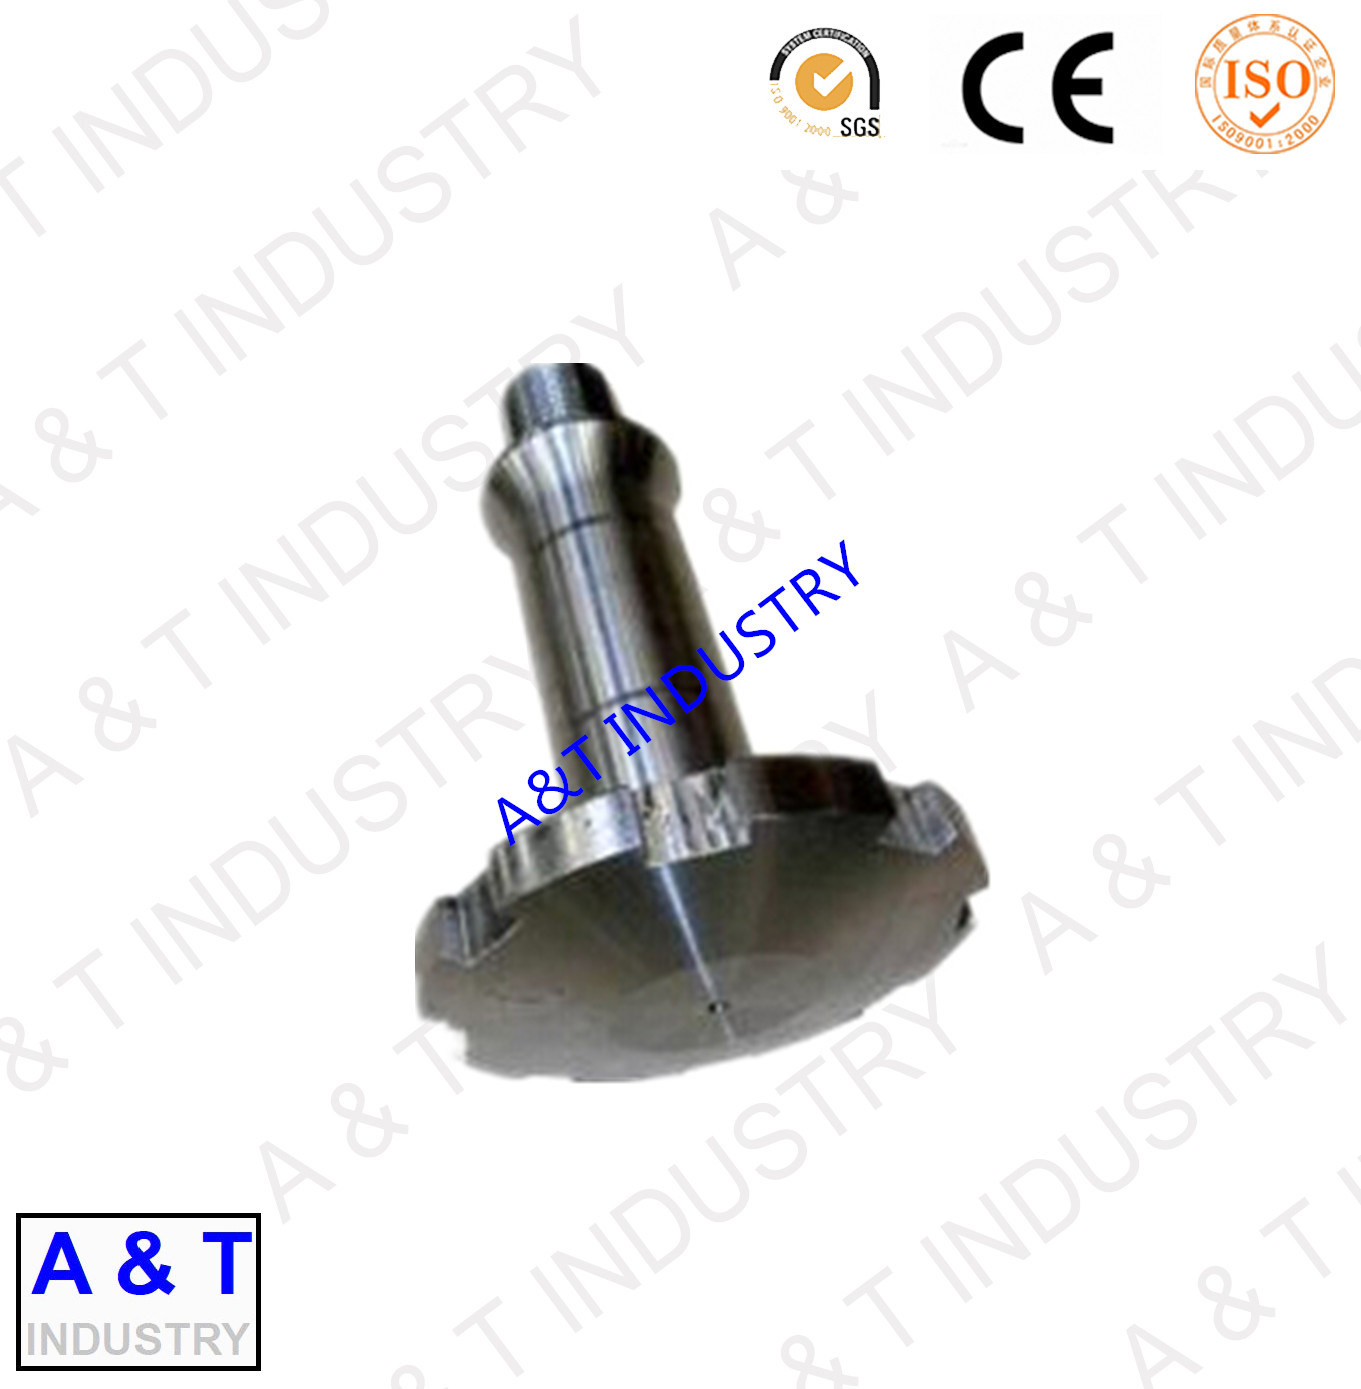 Stainless Steel Investment Casting and Lost Wax Casting Product pictures & photos